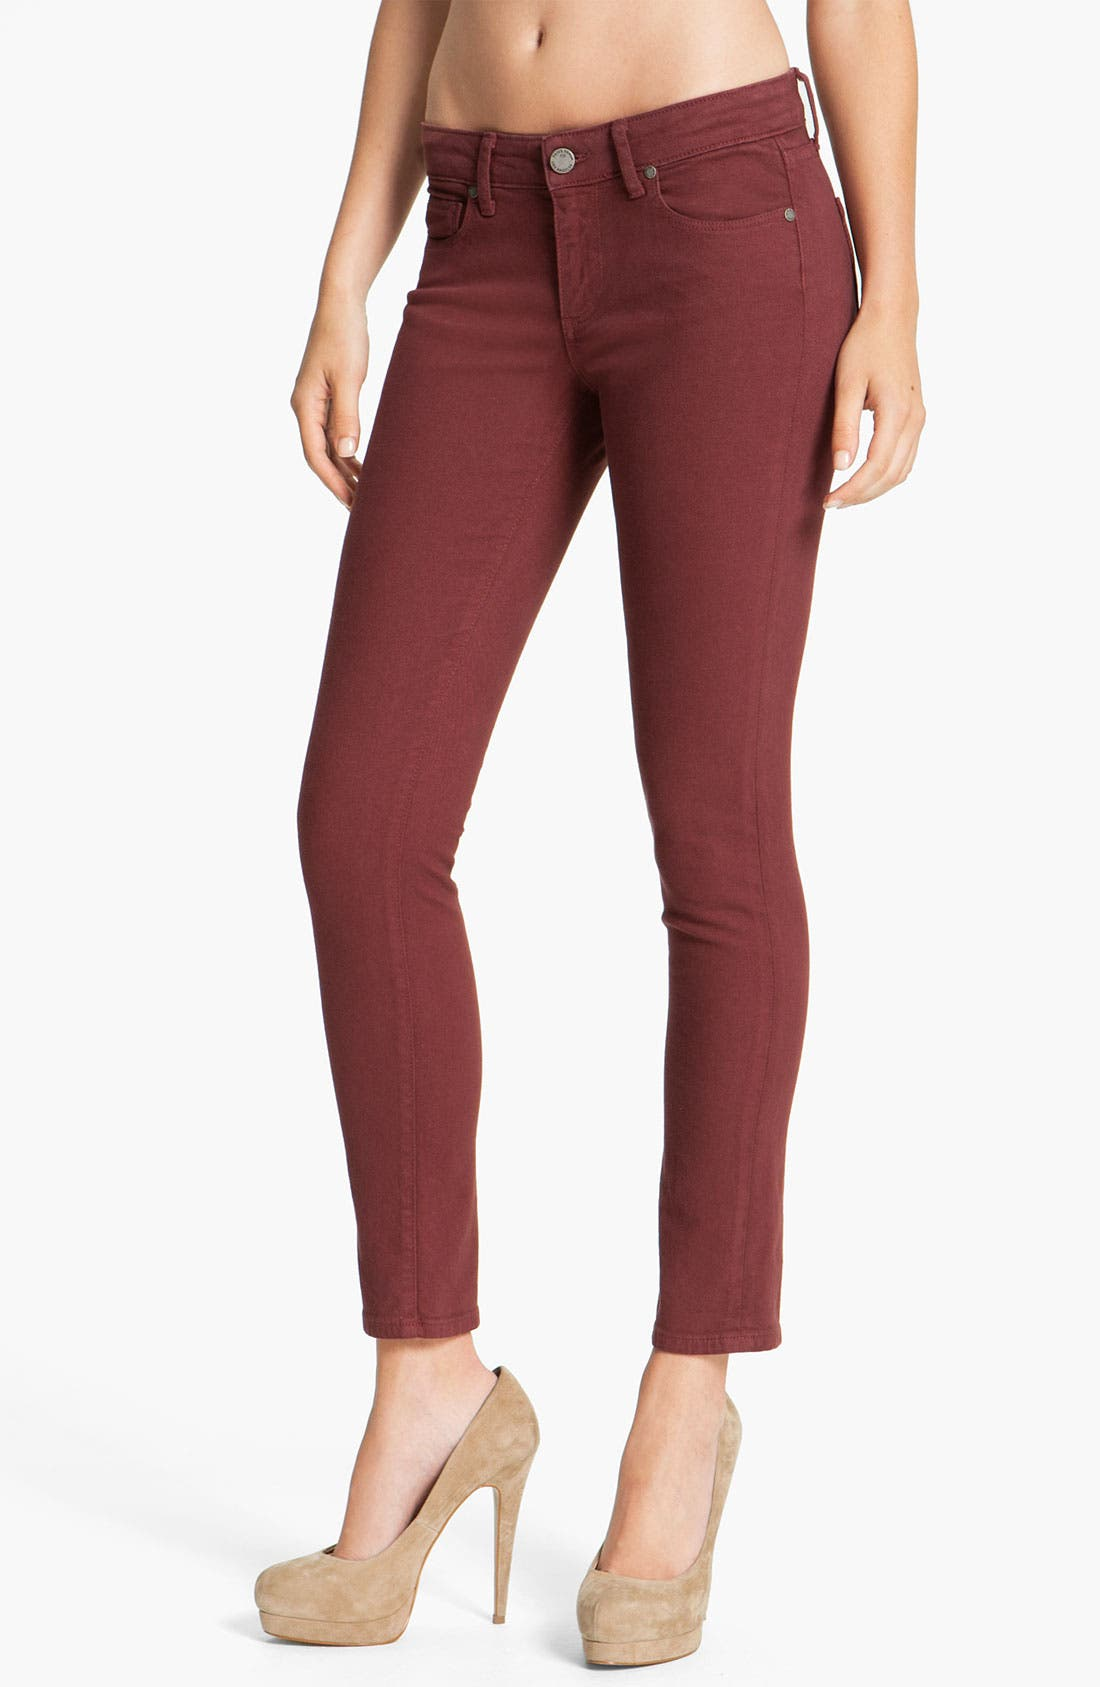 Alternate Image 1 Selected - Paige Denim 'Skyline' Skinny Jeans (Cheer)